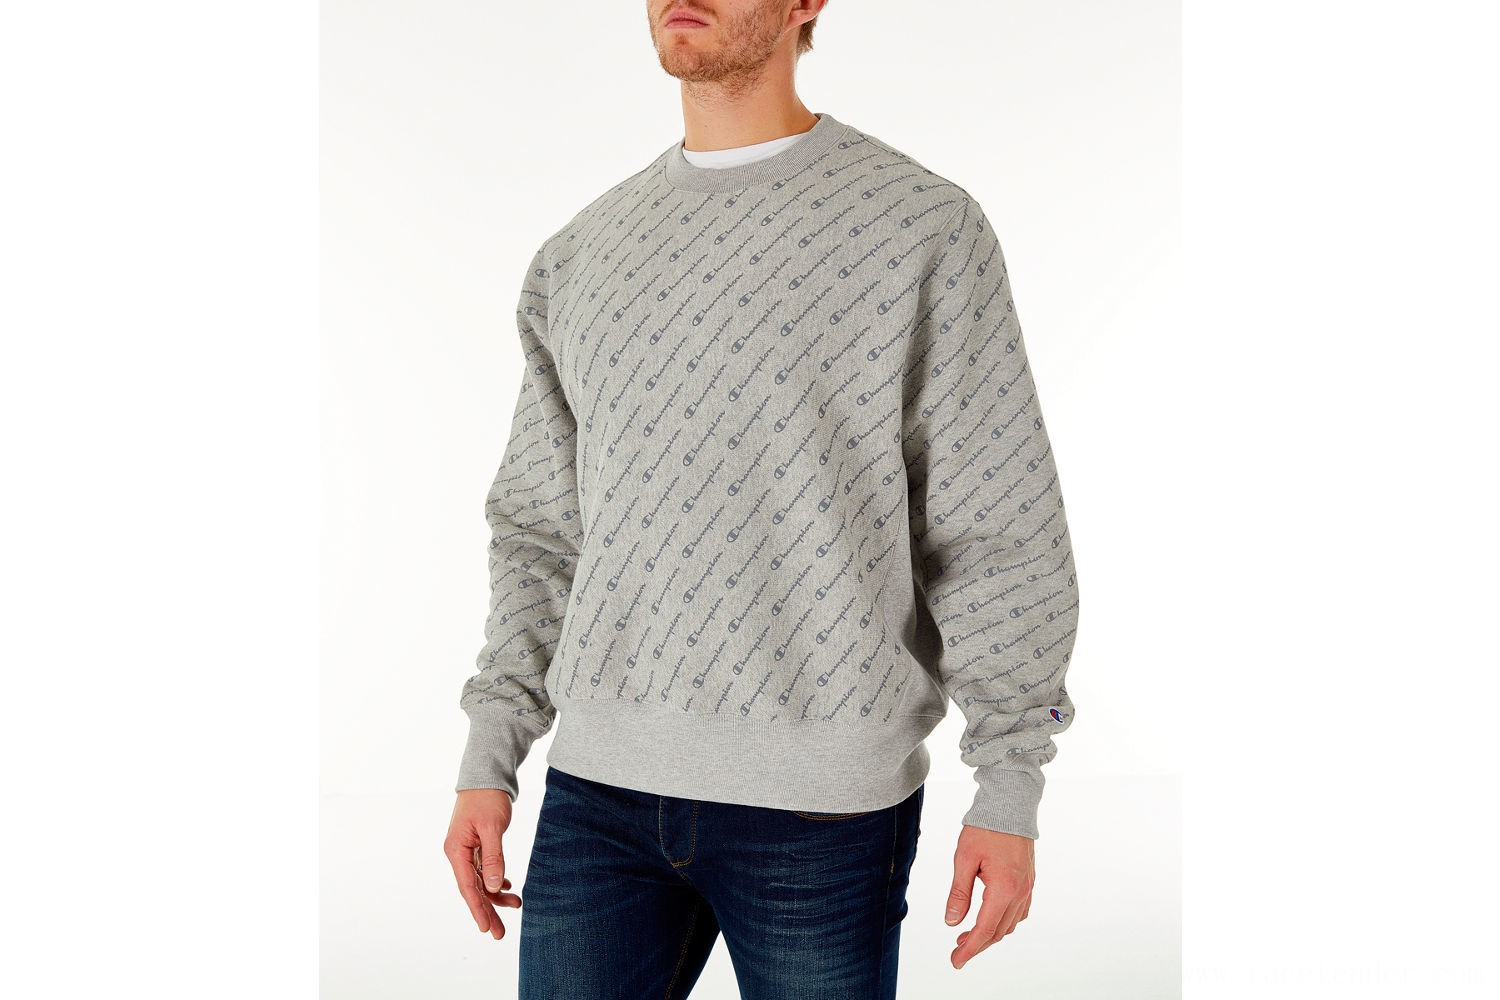 Champion Men's Reverse Weave Allover Print Crewneck Sweatshirt - Script Oxford Grey